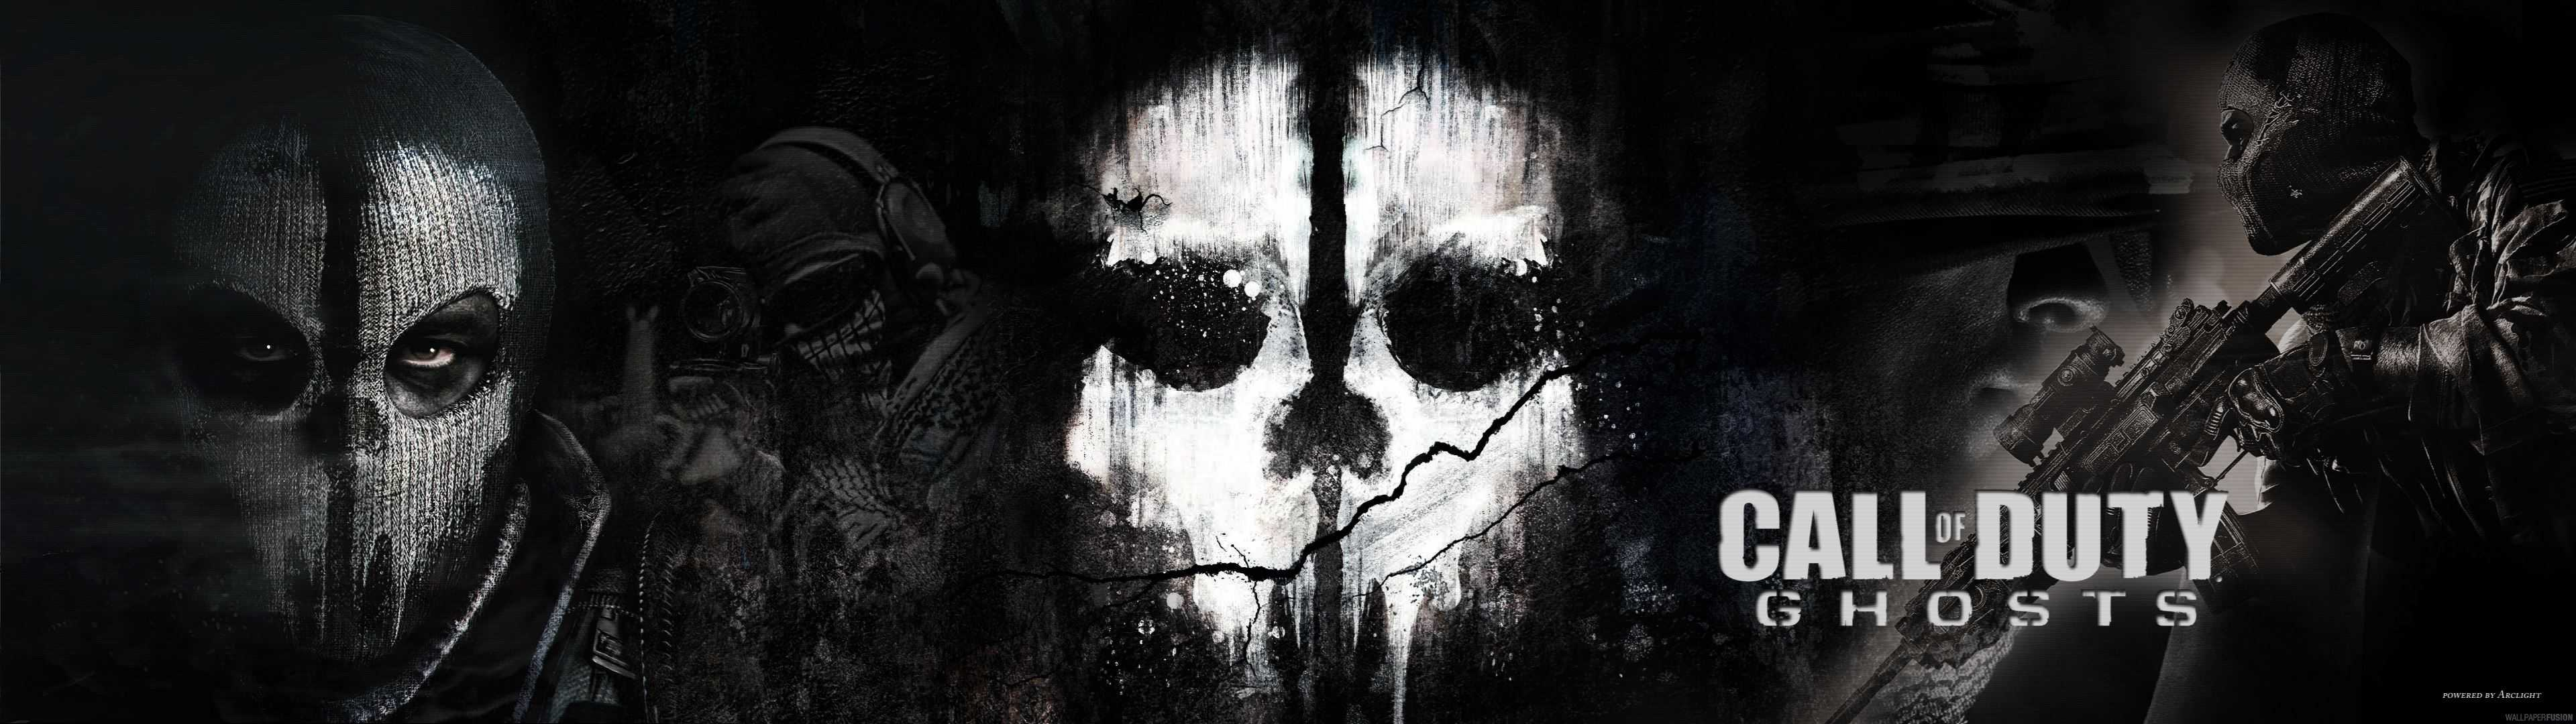 Call Of Duty Ghosts Dual Monitor Wallpaper | Pixelz